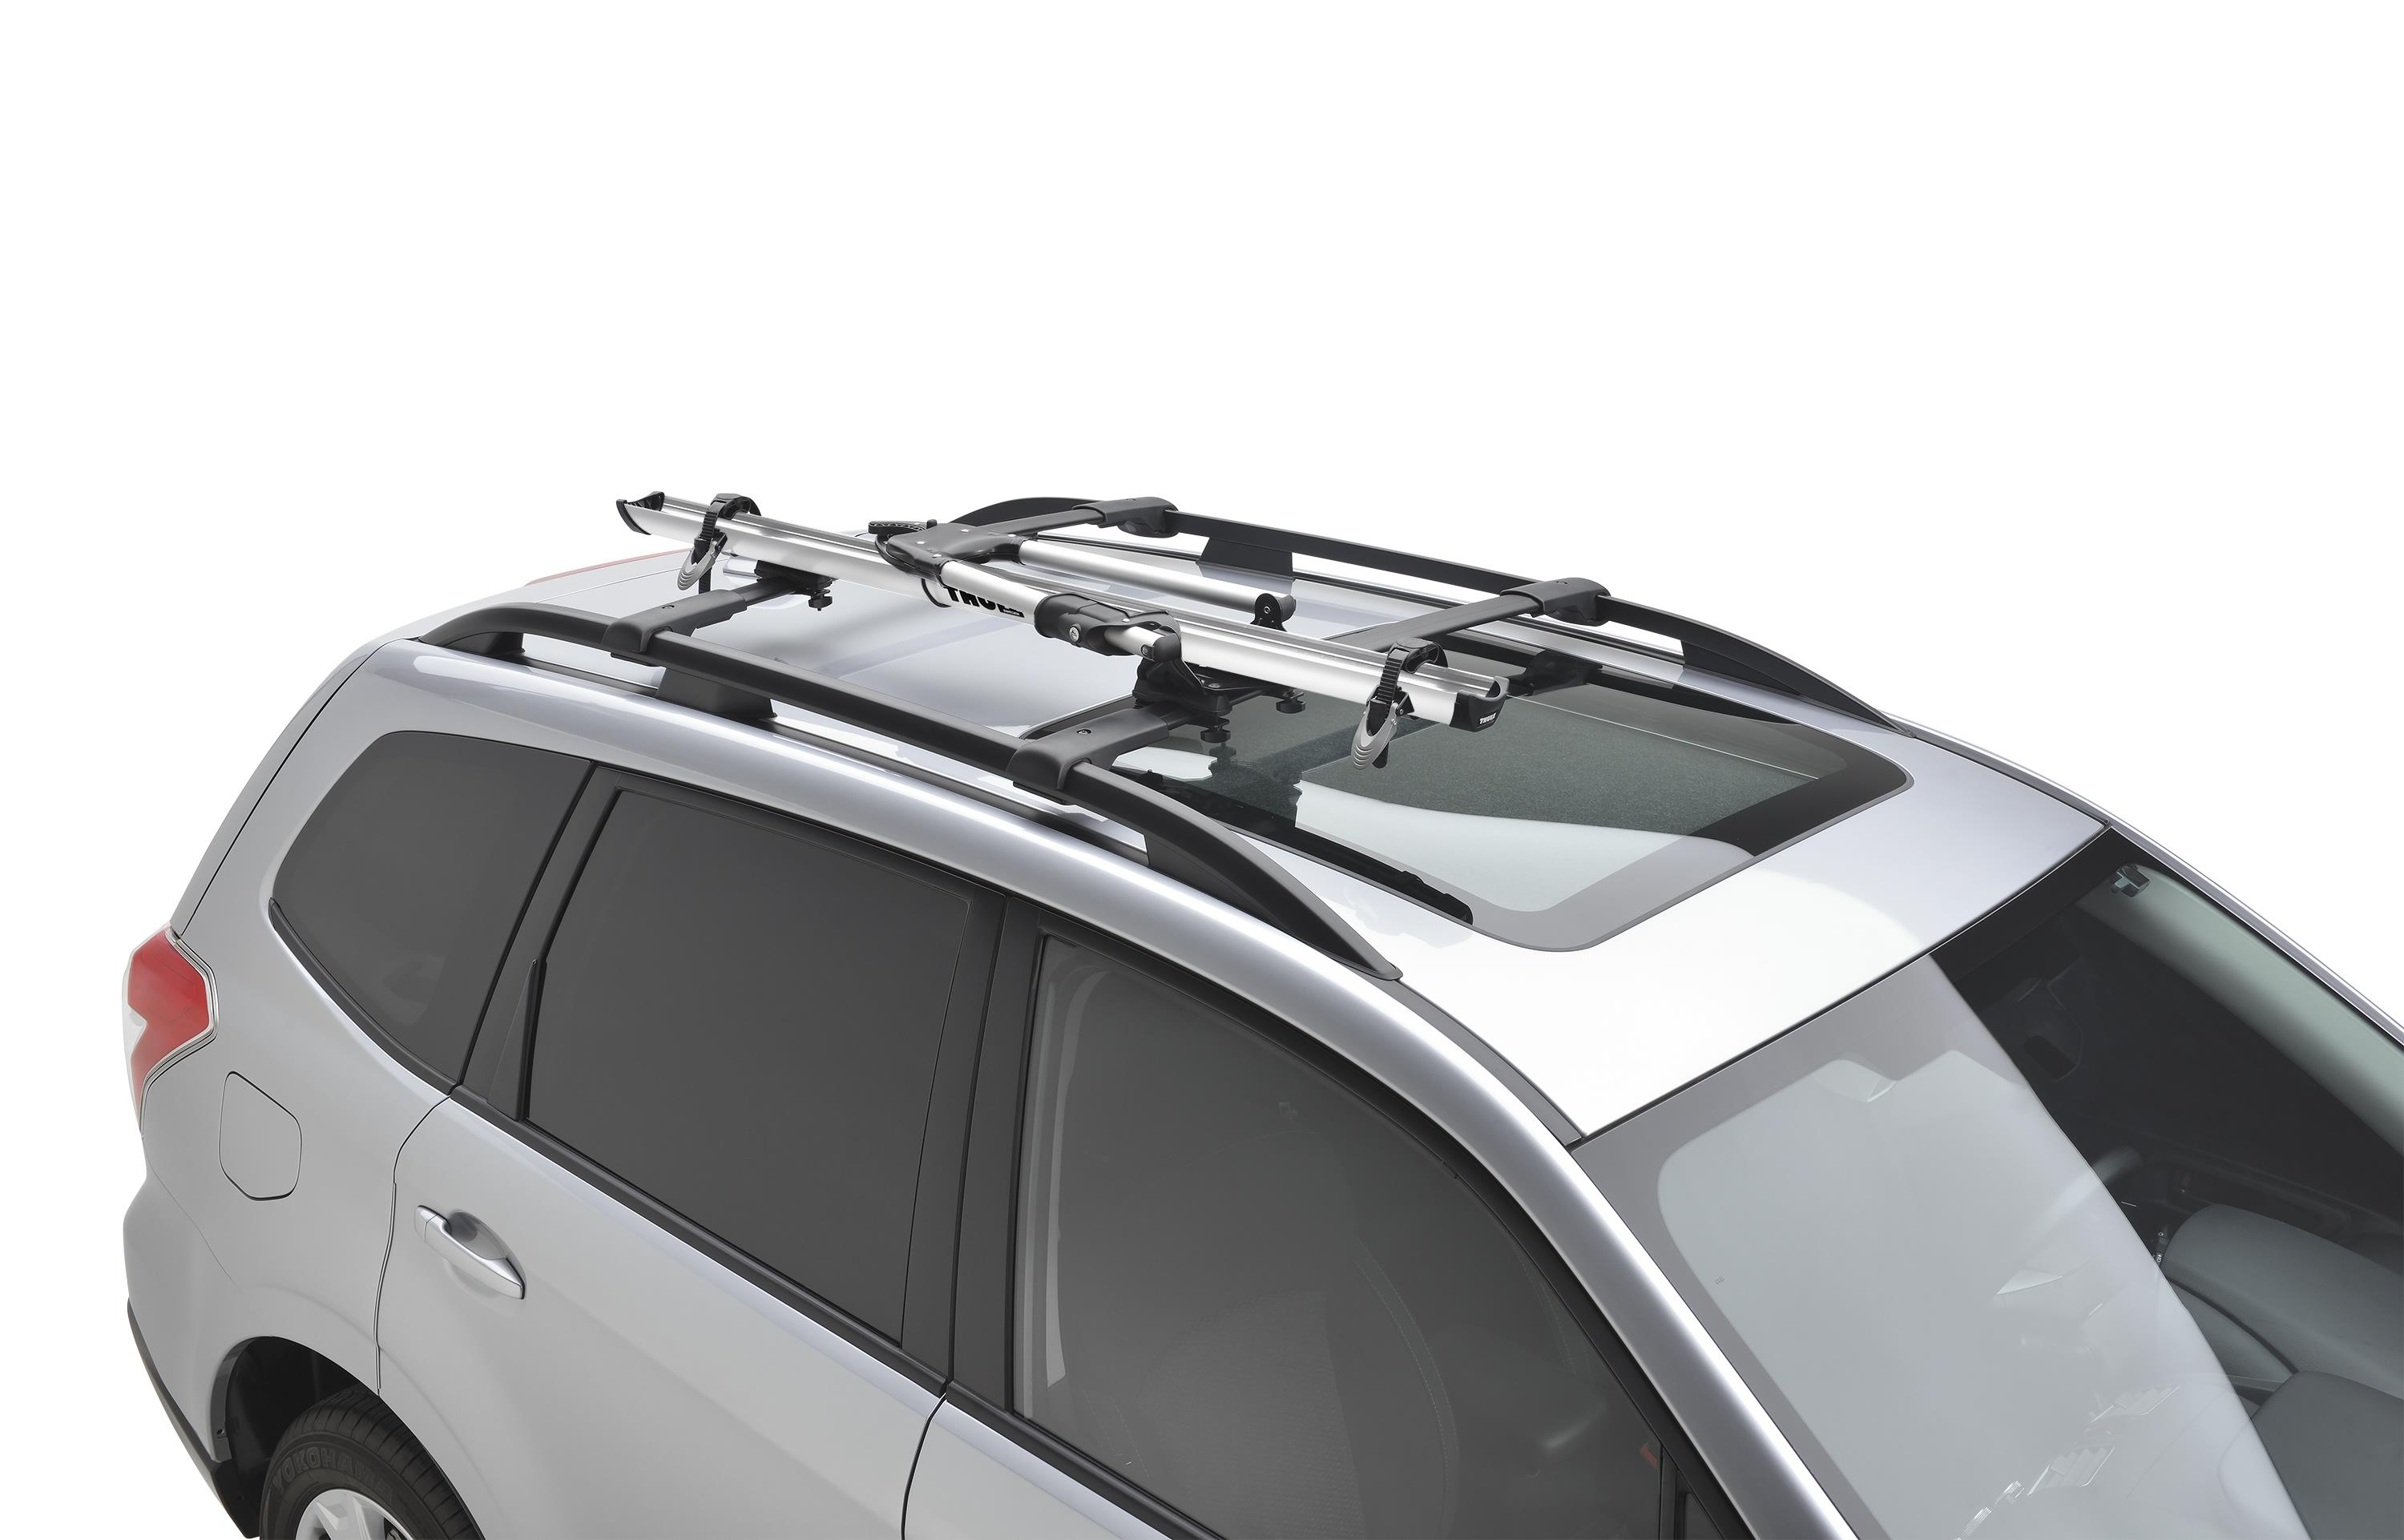 Subaru Crosstrek Roof Rack >> 2017 Subaru Outback Thule® Bike Carrier - Roof Mounted - SOA567B020 - Genuine Subaru Accessory